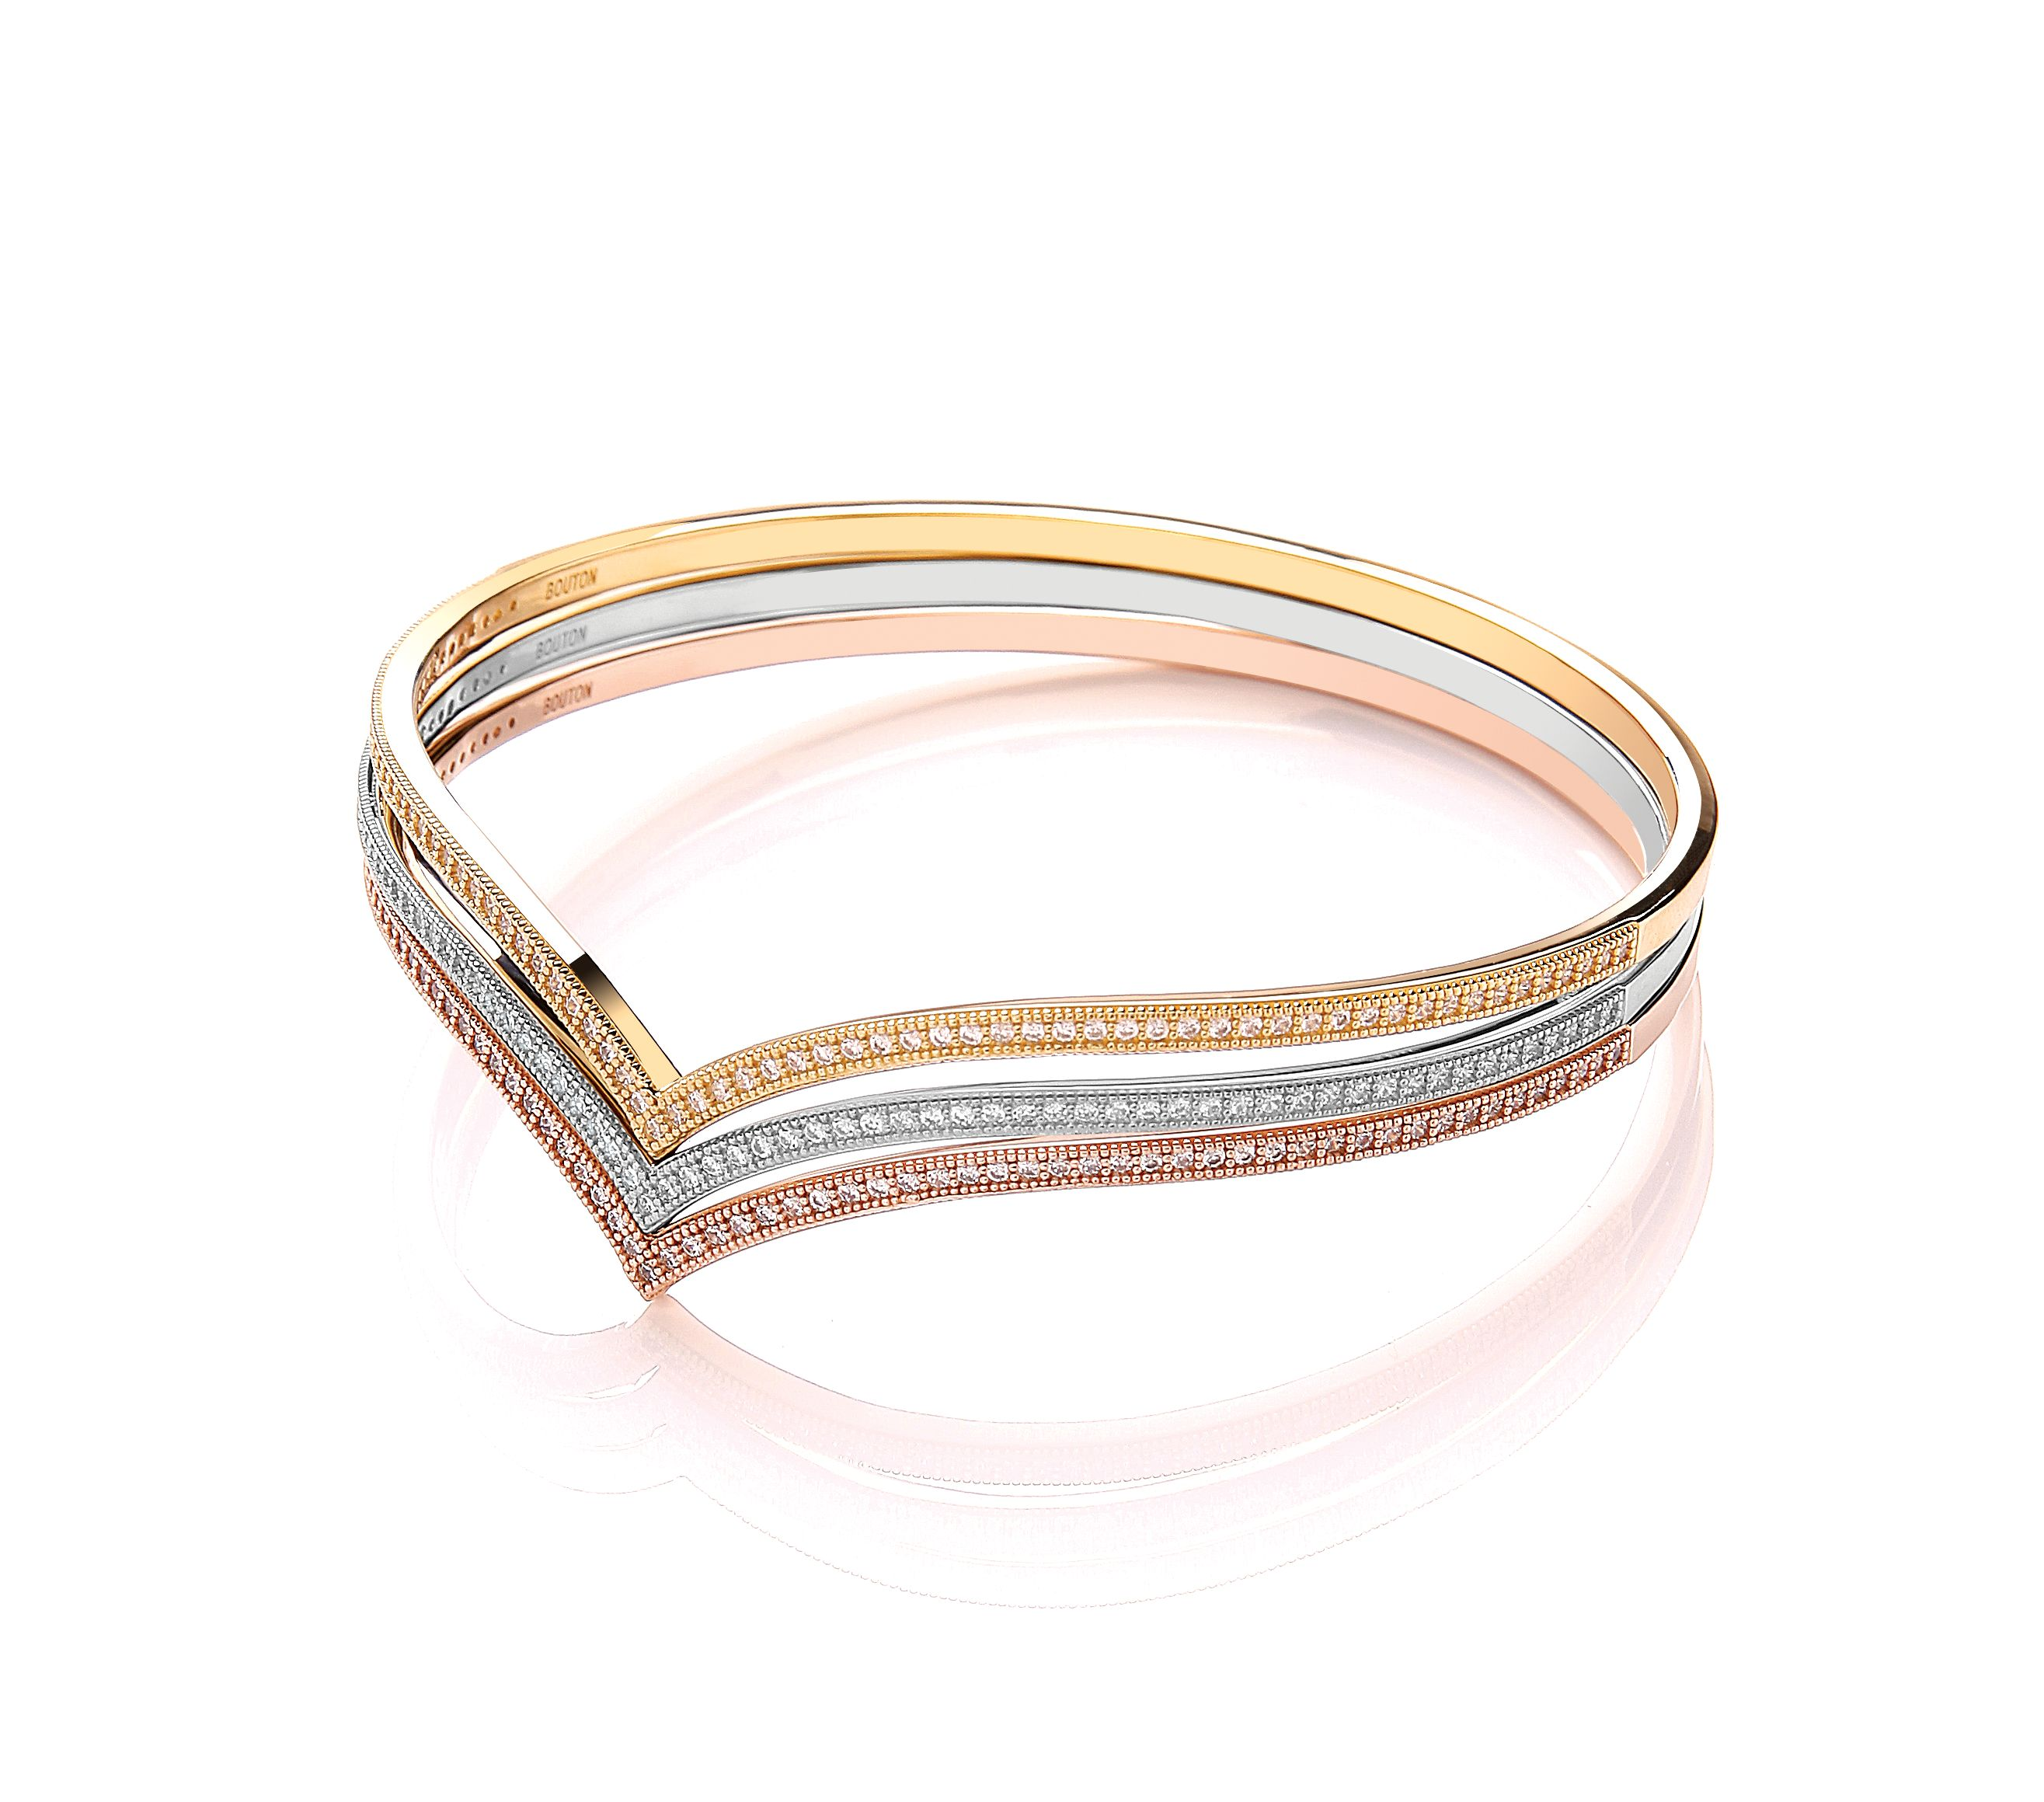 Rose gold wishbone bangle